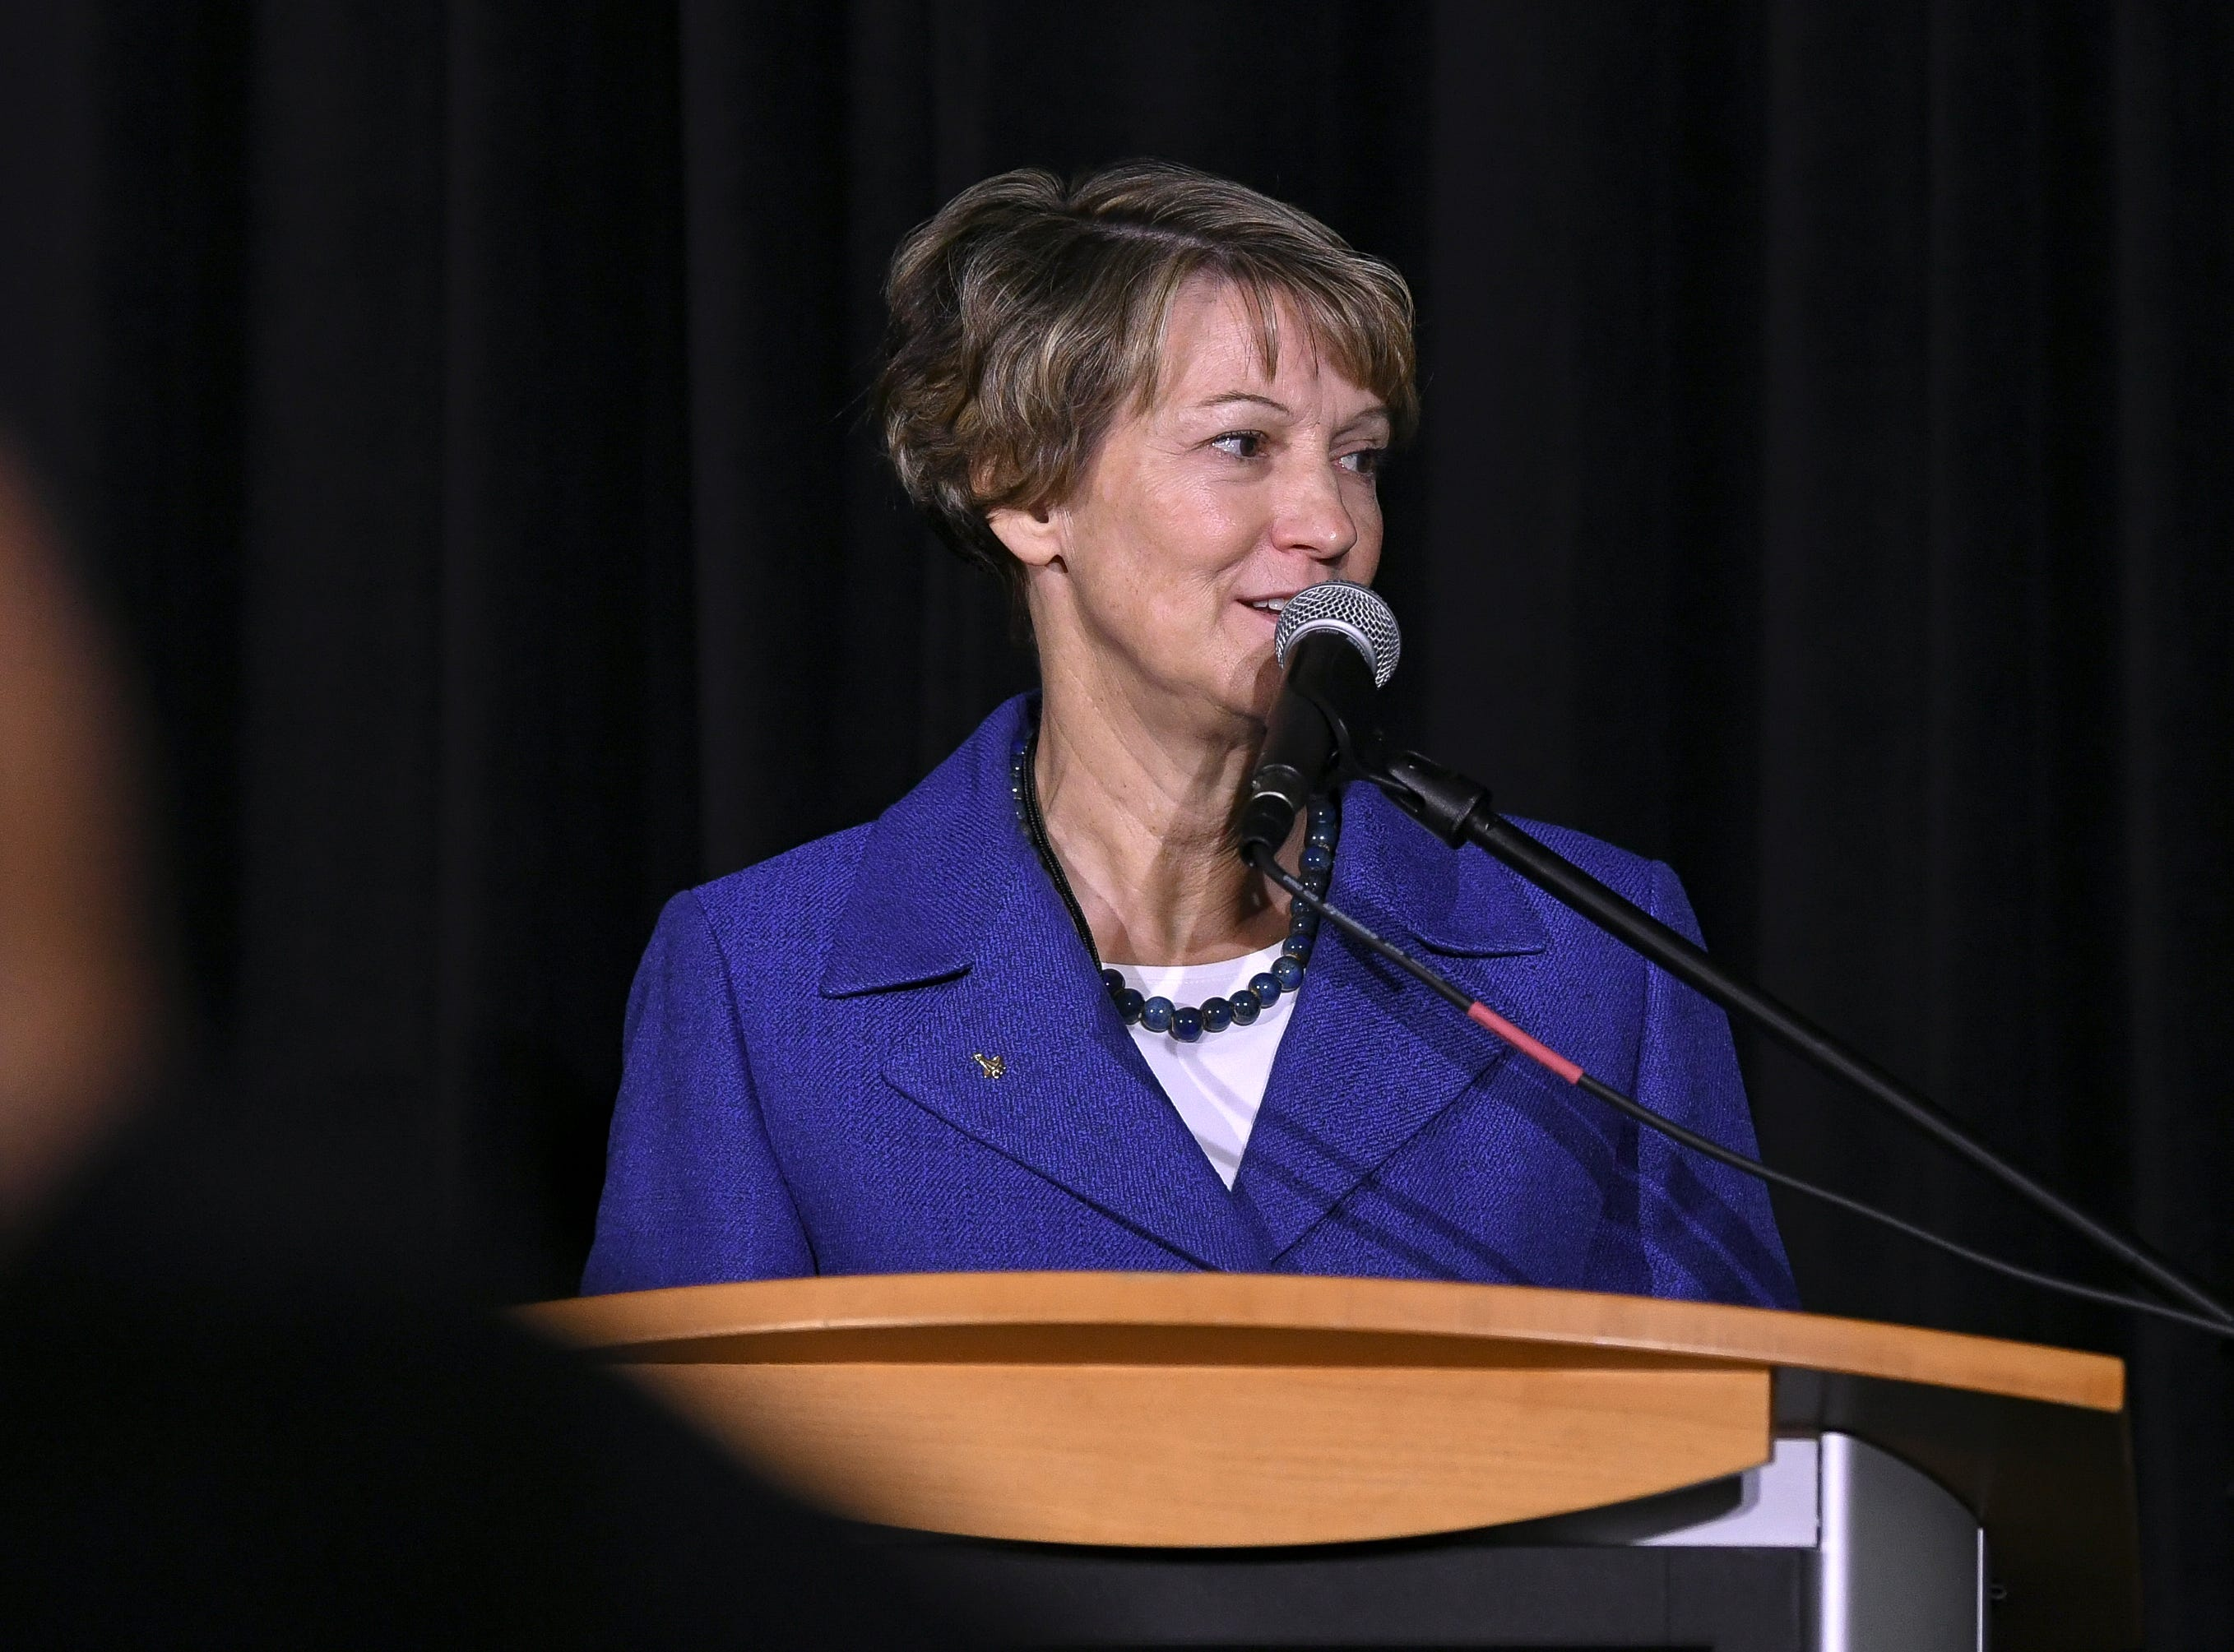 Astronaut and Elmira native Eileen Collins addresses the crowd at a memorial for astronaut Robert H. Lawrence, Jr at Kennedy Space Center Visitor Complex